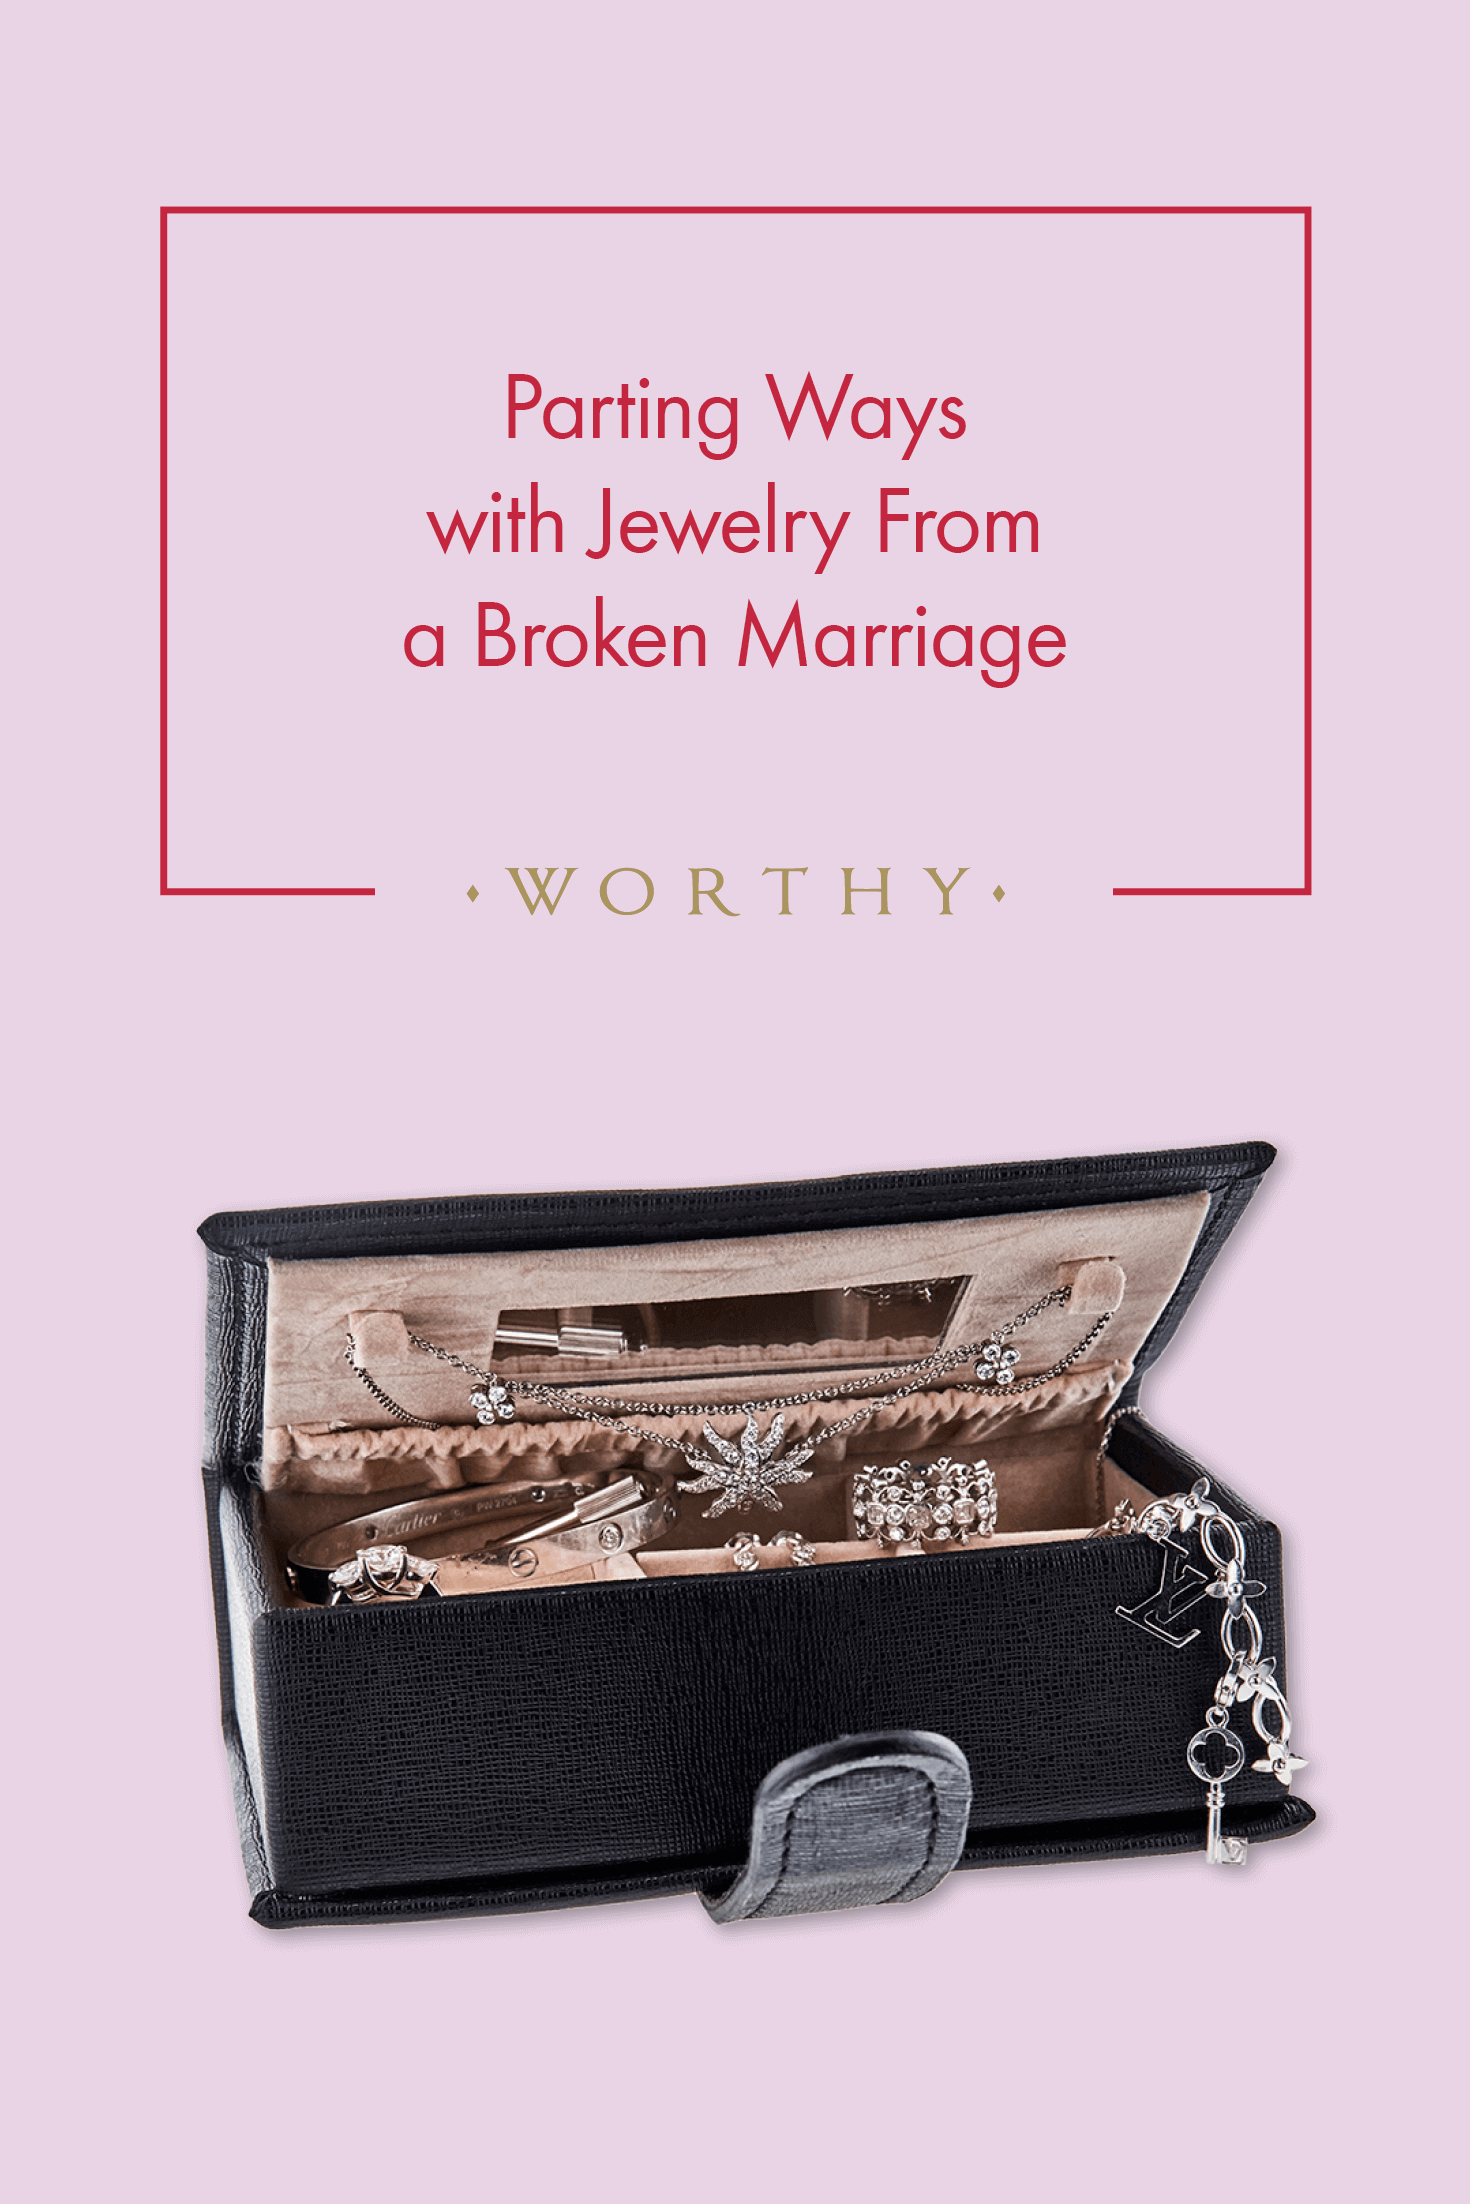 Should you sell jewelry gifts from a previous marriage? Our client and contributor Jennifer Butler shares her journey of letting go.